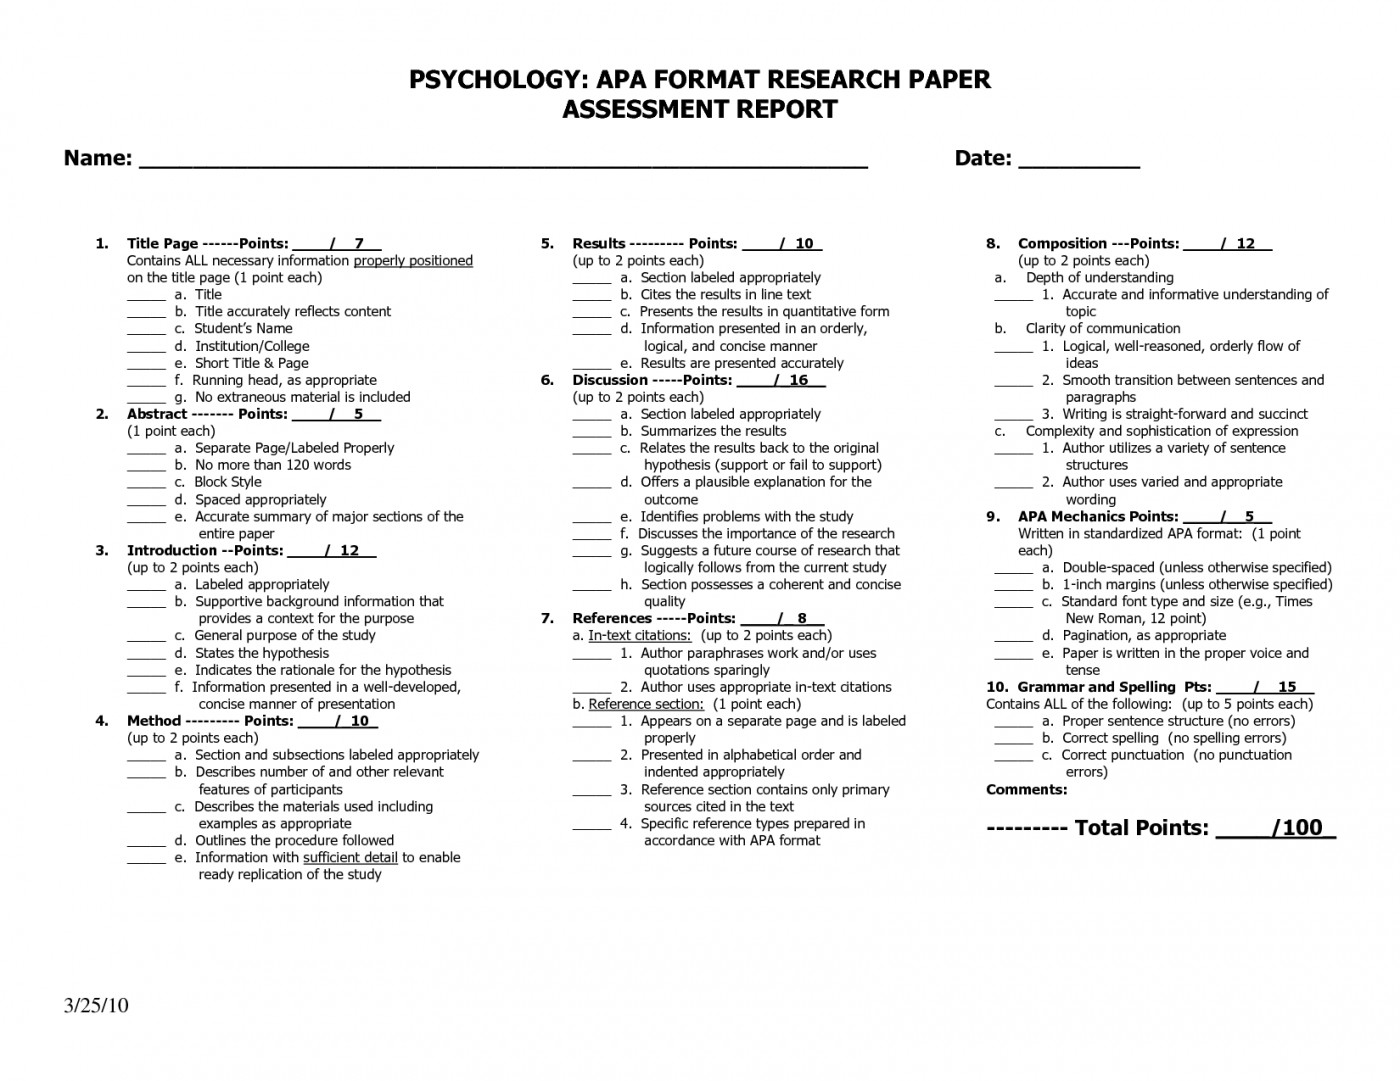 006 Apamat Of Psychology Research Paper Marvelous Apa Format 1400